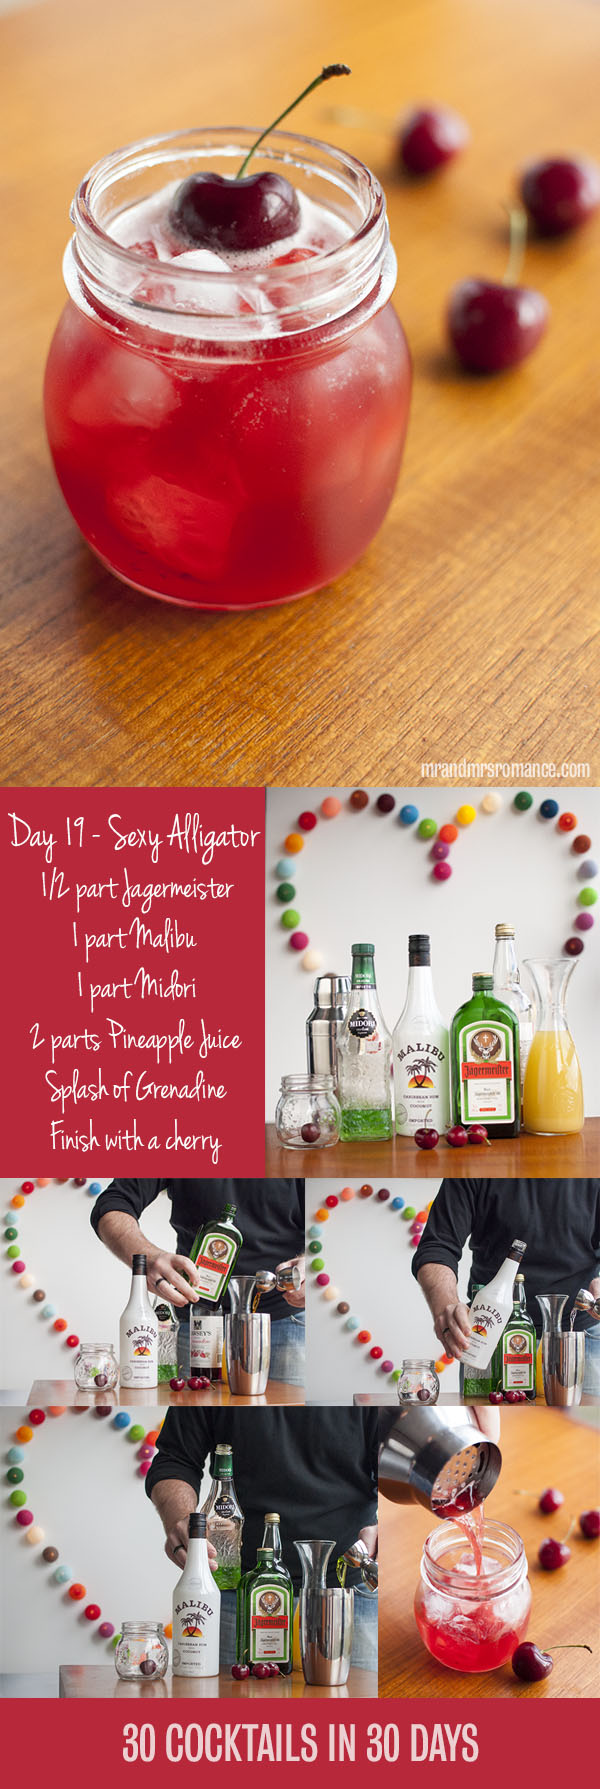 Mr and Mrs Romance - Day 19 - Sexy Alligator Cocktail Recipe